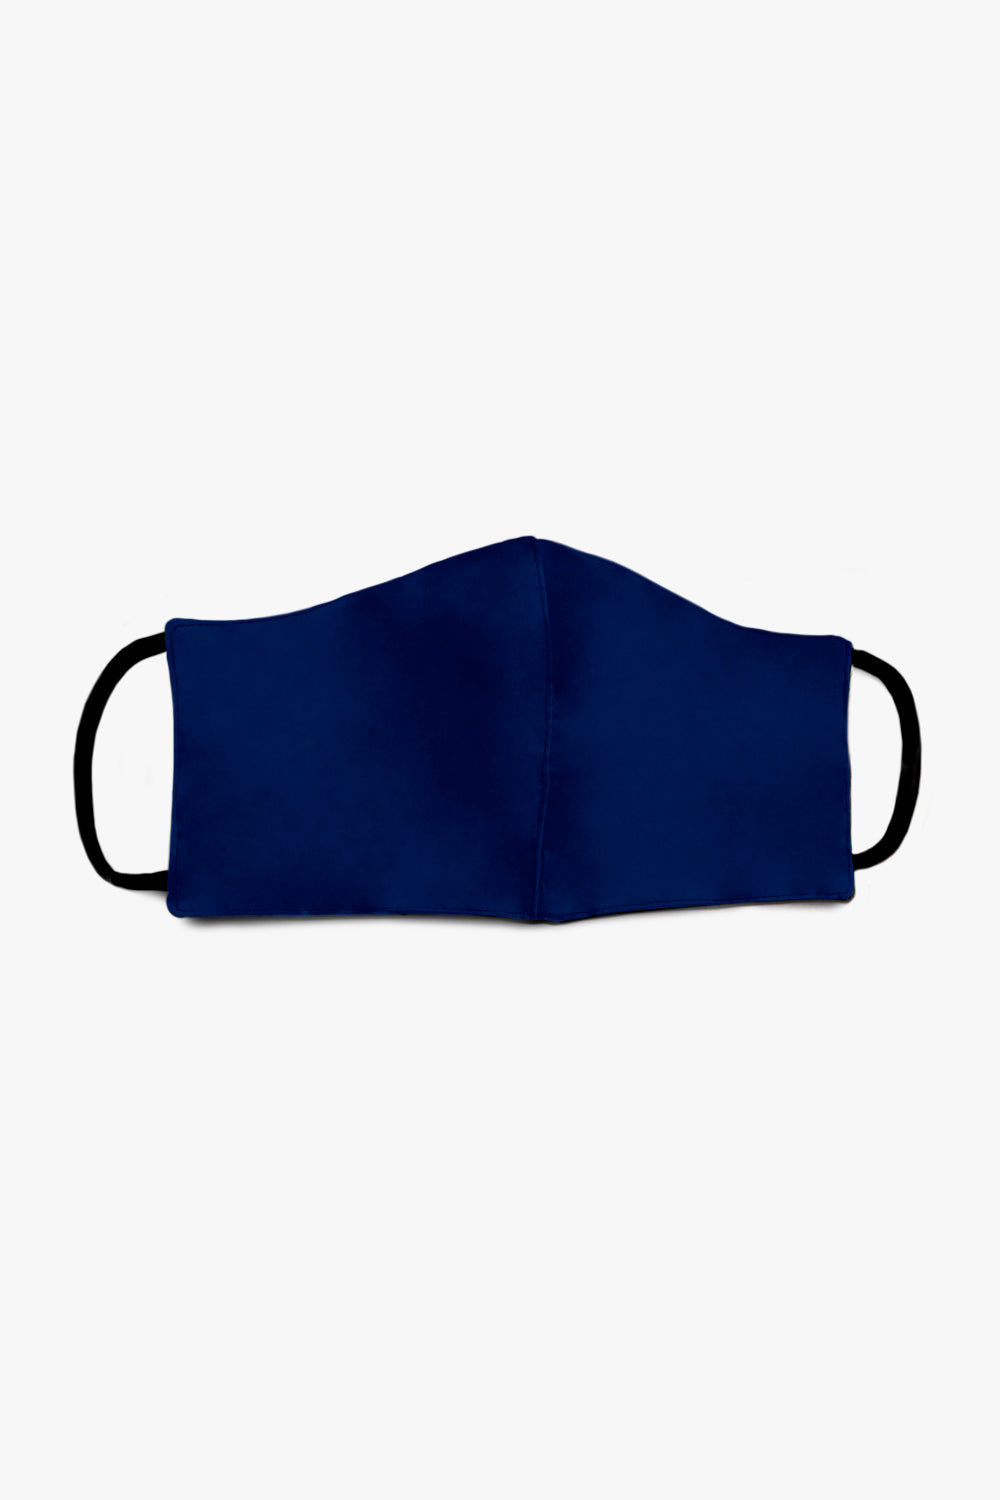 face mask / navy